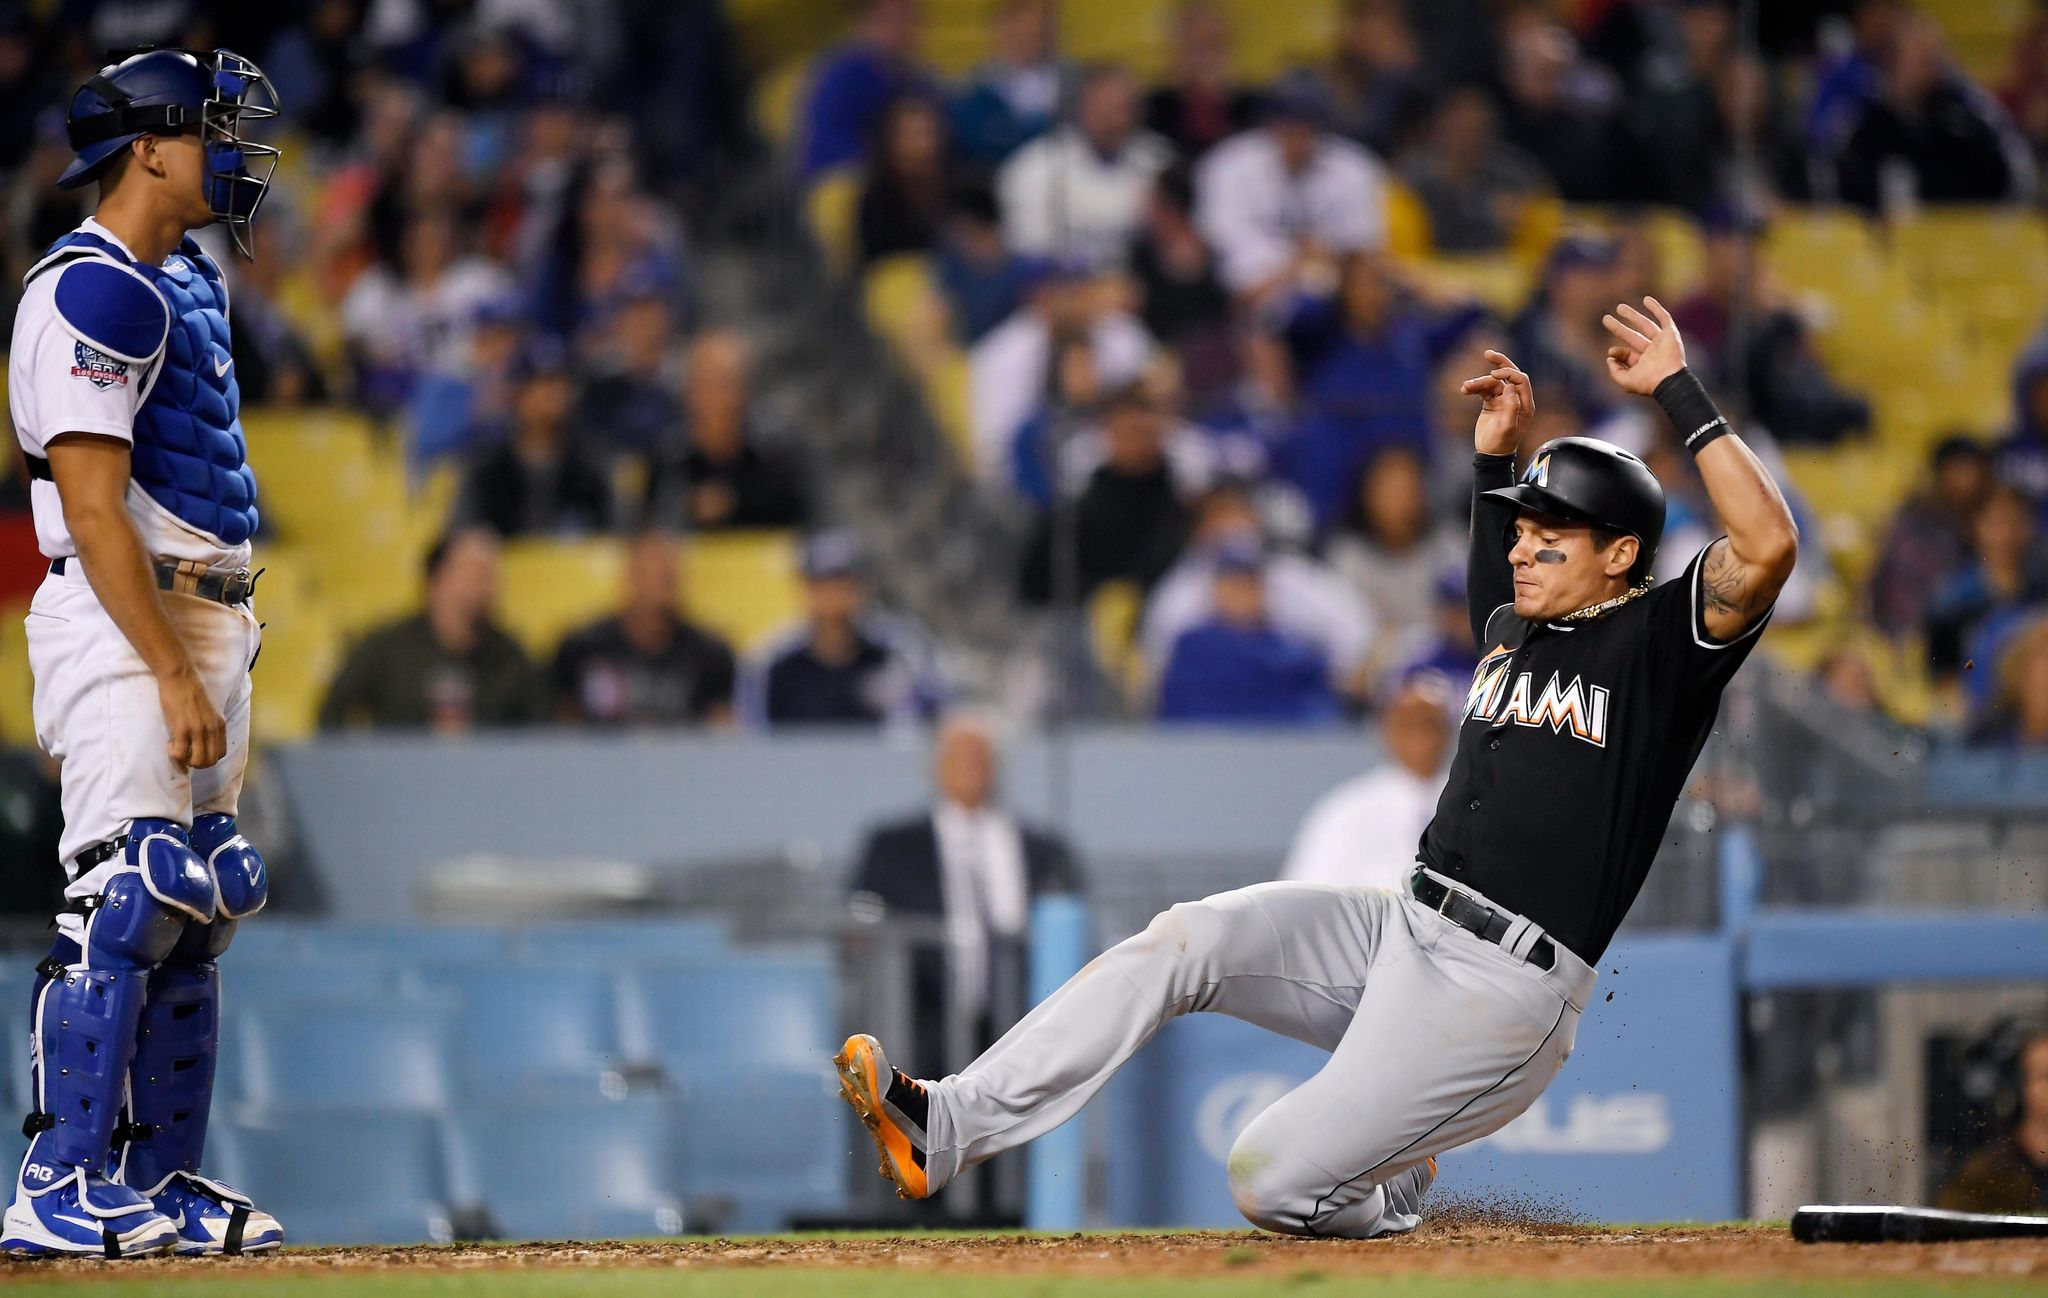 Marlins edge Dodgers 3-2 on Maybin's RBI in 9th, stop skid - Washington Times